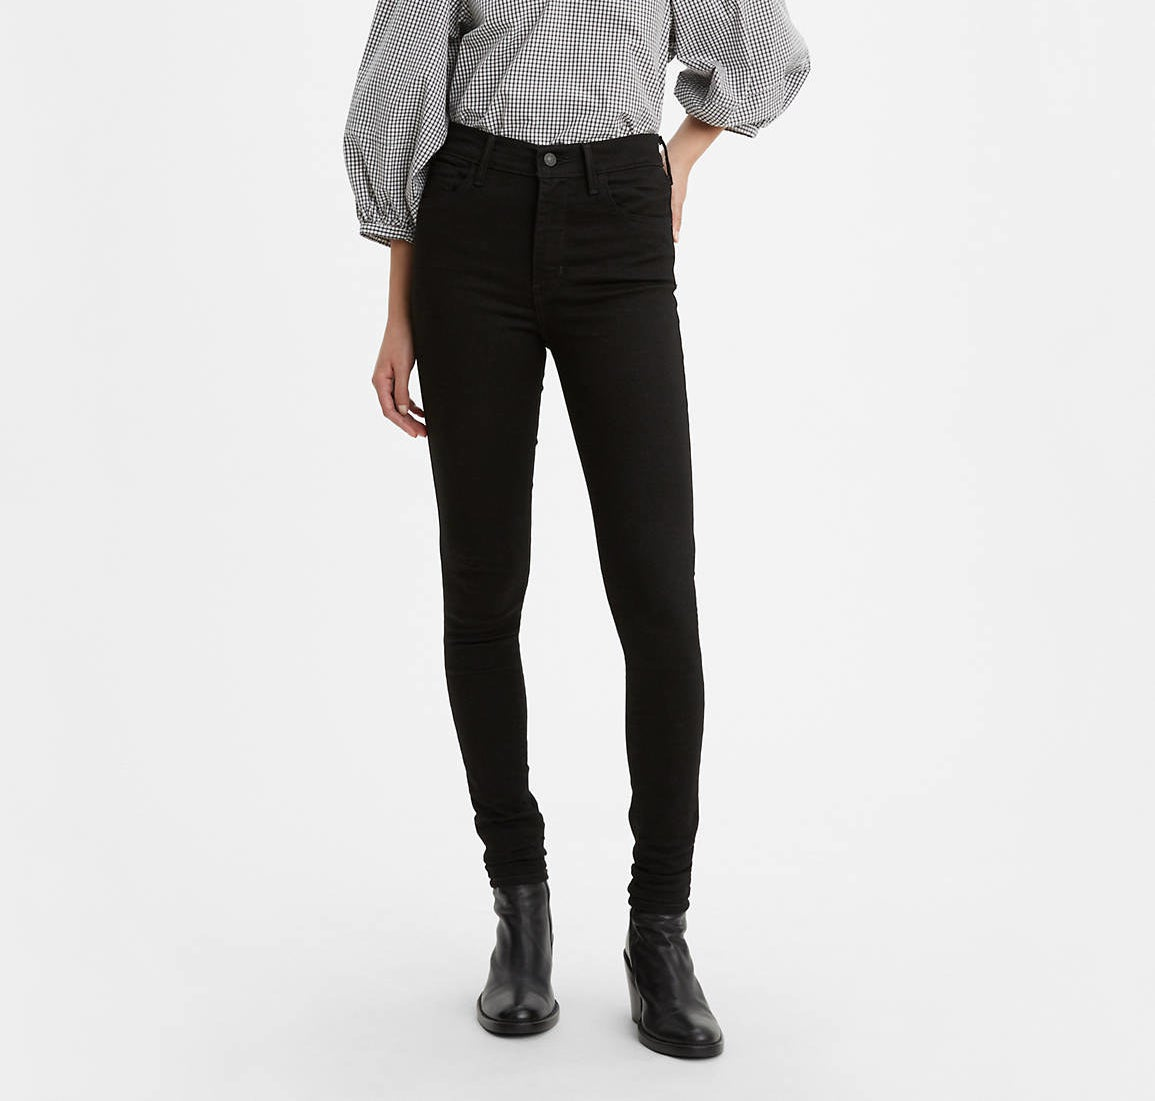 a model wearing the high-rise skinny jeans in black